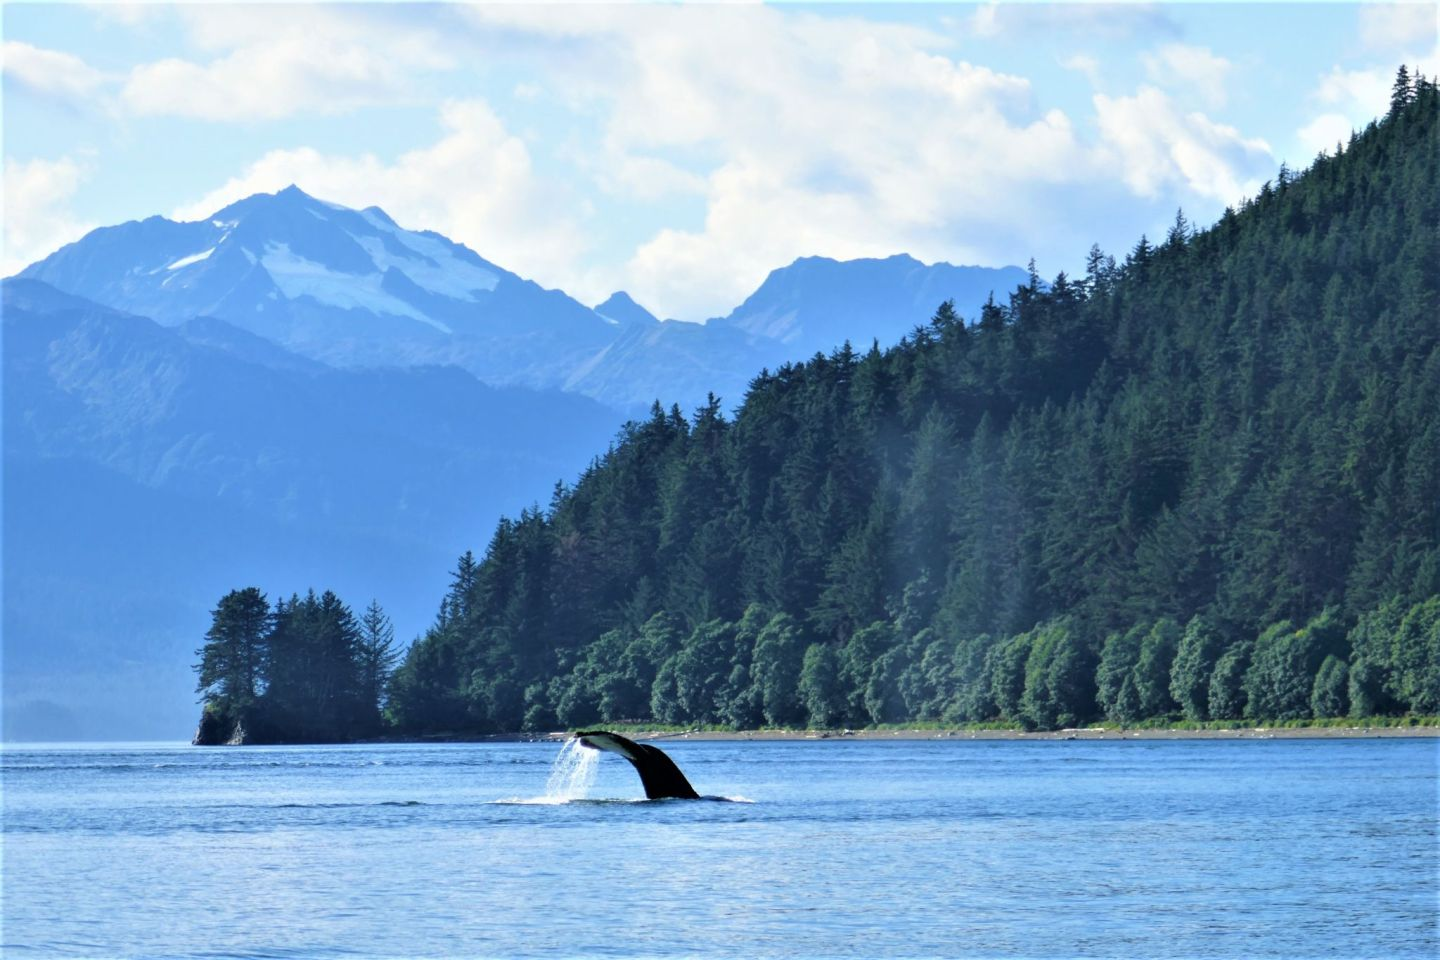 Whale Tail - Must Do Tours in Juneau Alaska - Mendenhall Glacier & Whale Watching - Lucy Williams Global